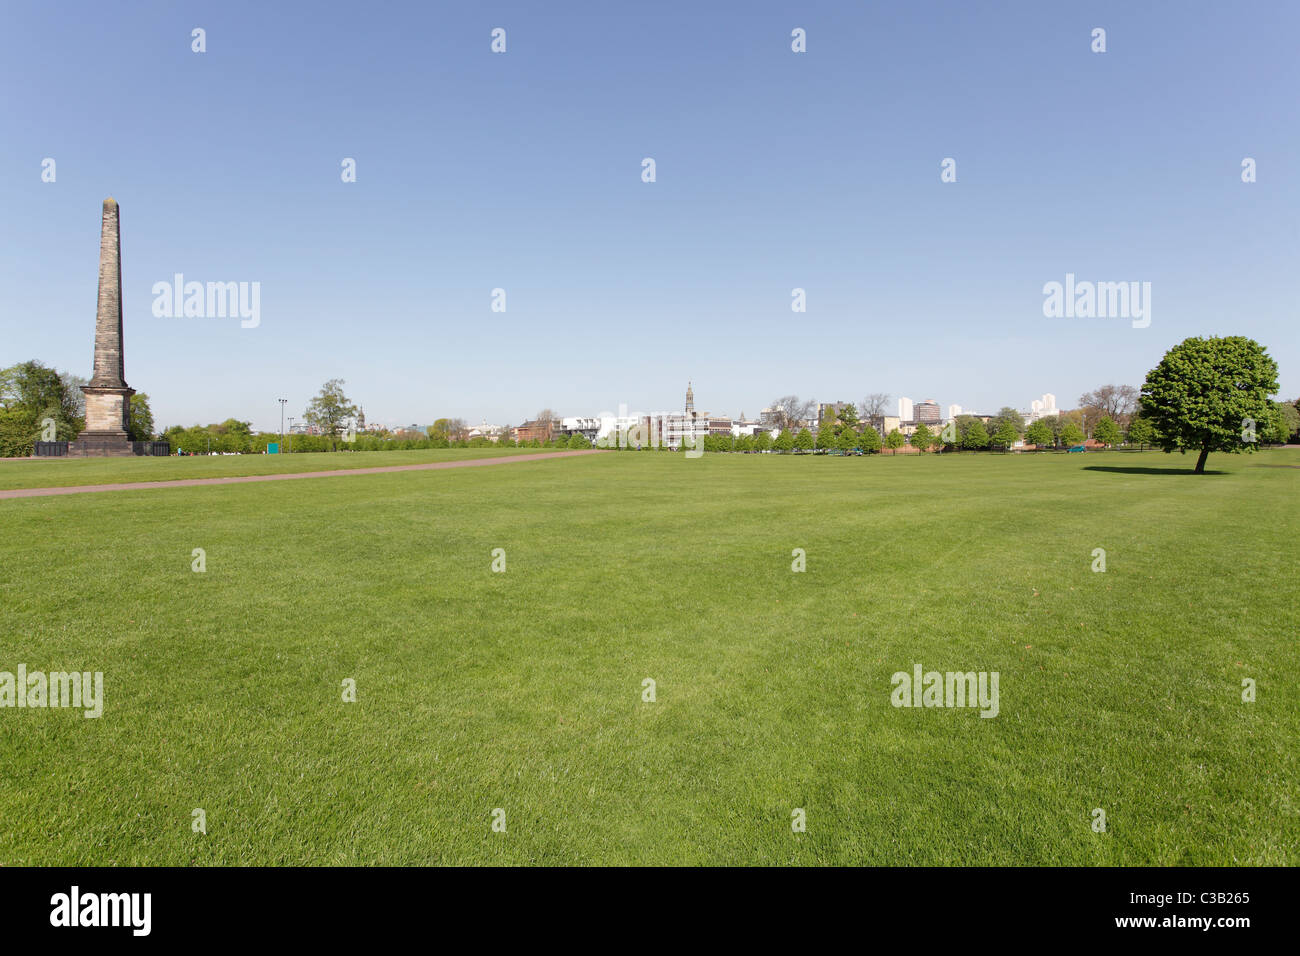 Wide open space of Glasgow Green Public Park in Glasgow's East End Scotland UK - Stock Image